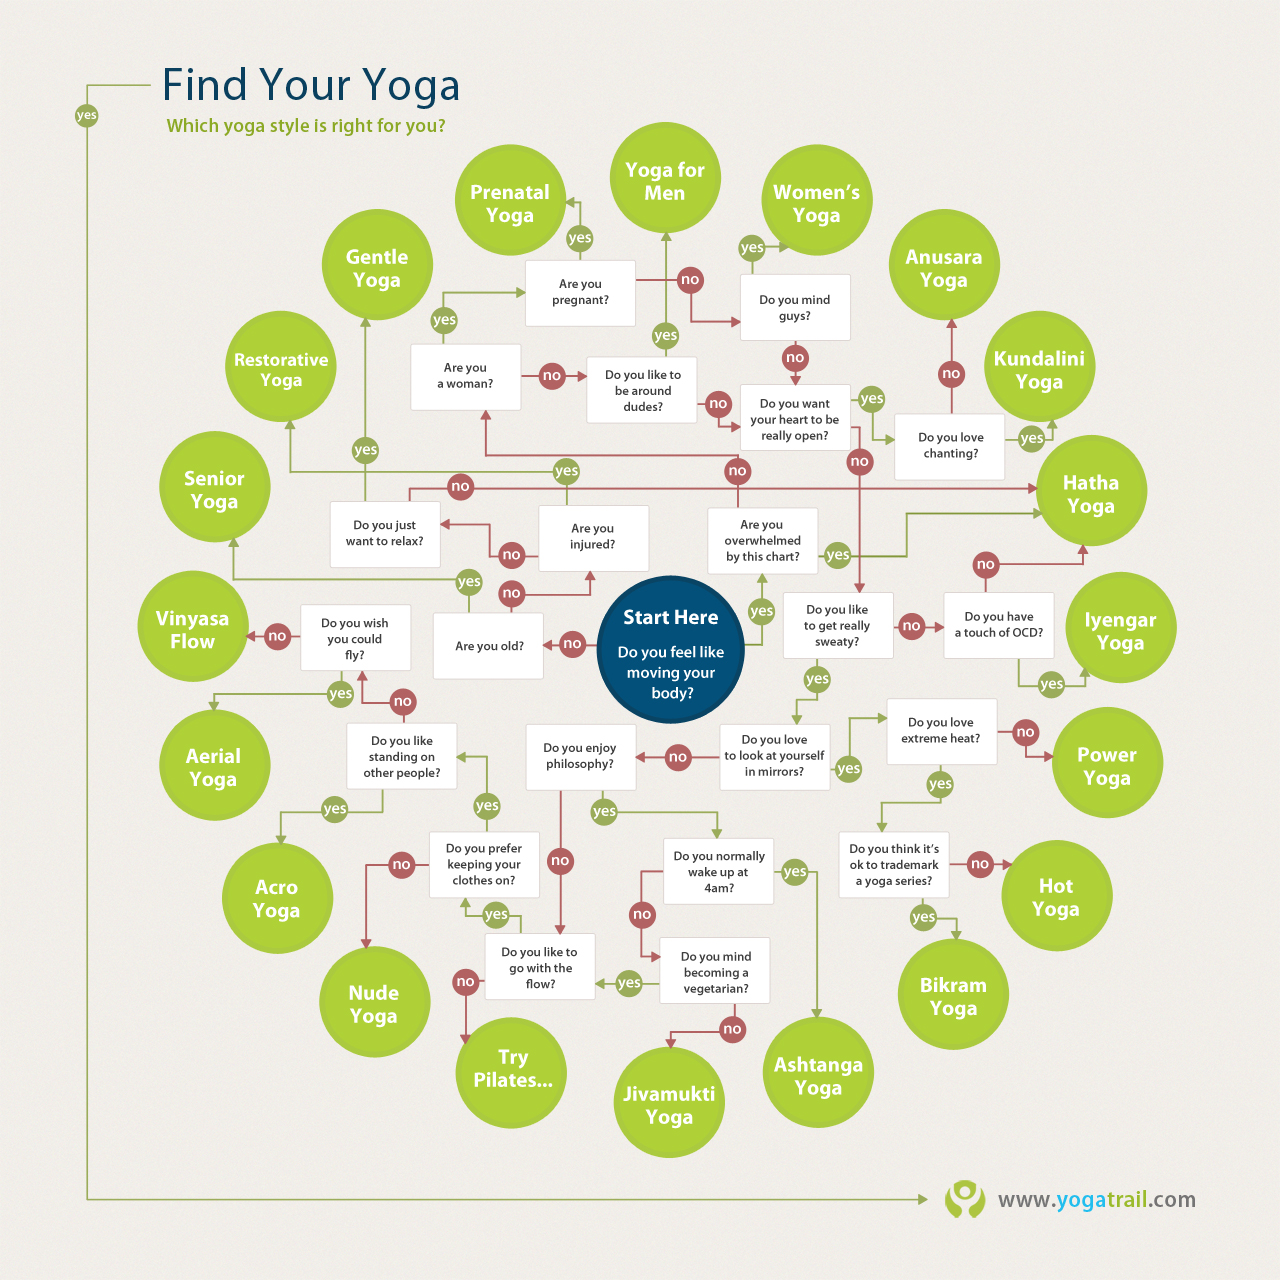 Find your yoga.